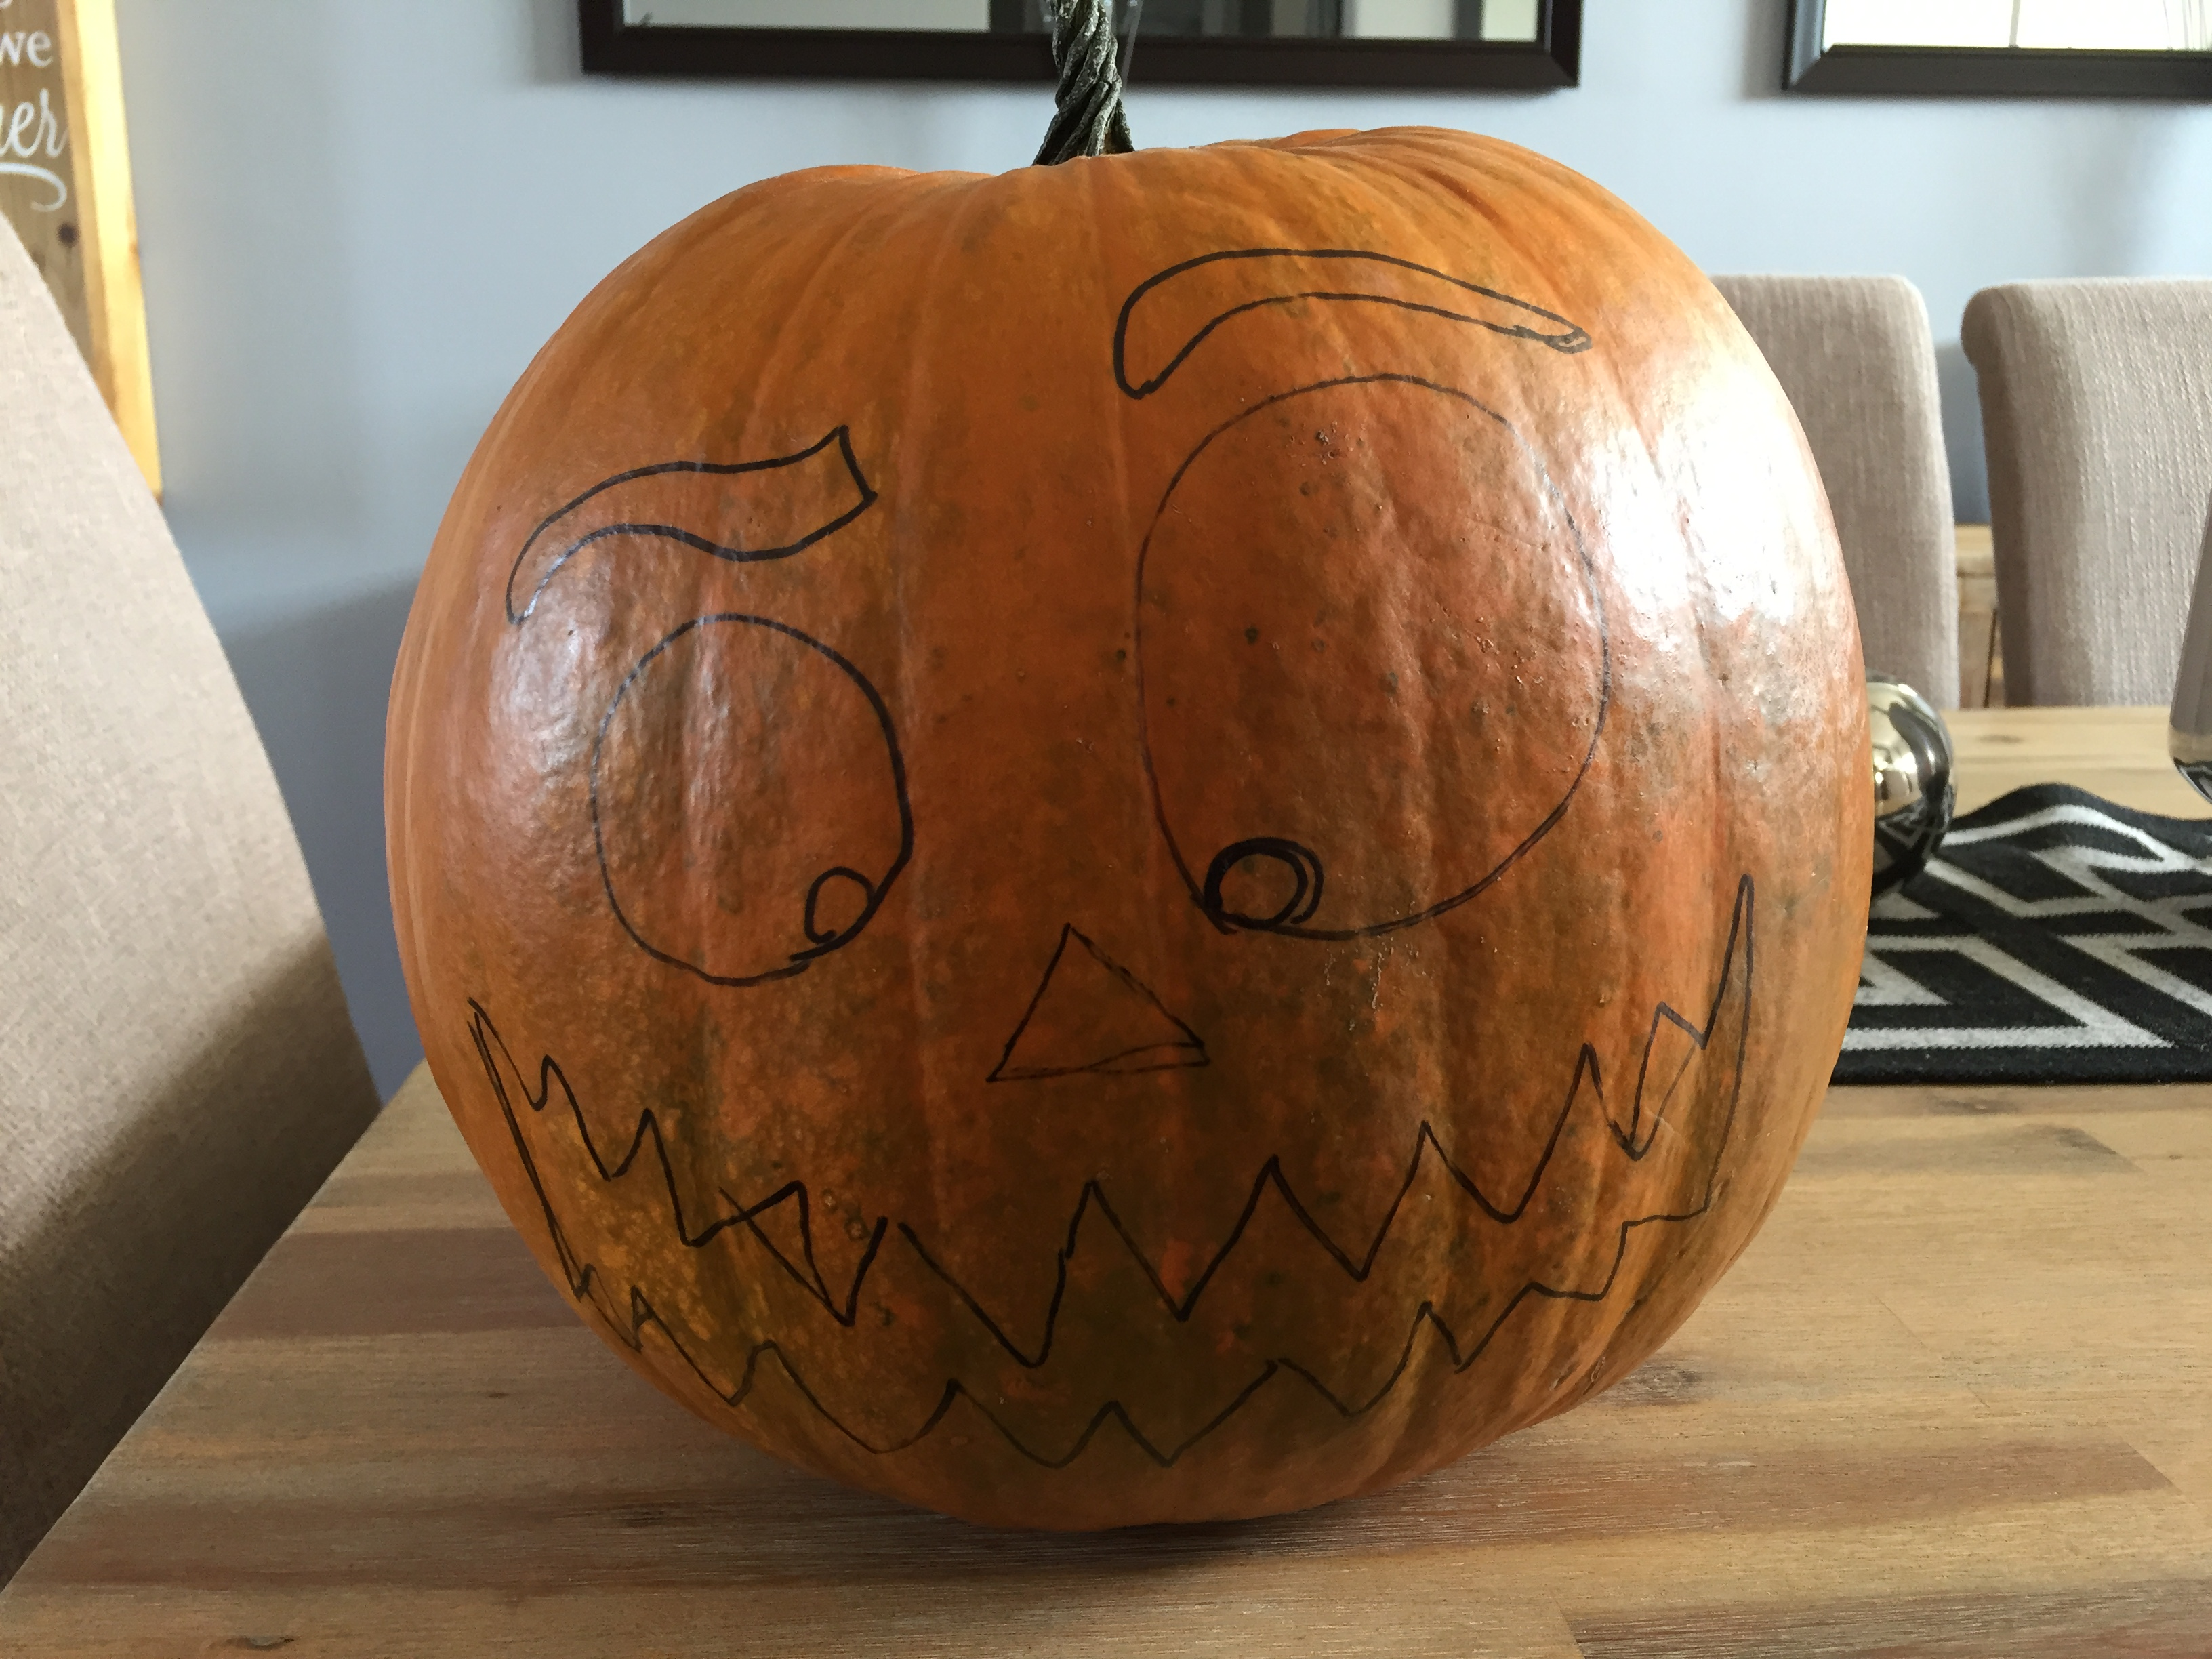 draw your design onto the pumpkin